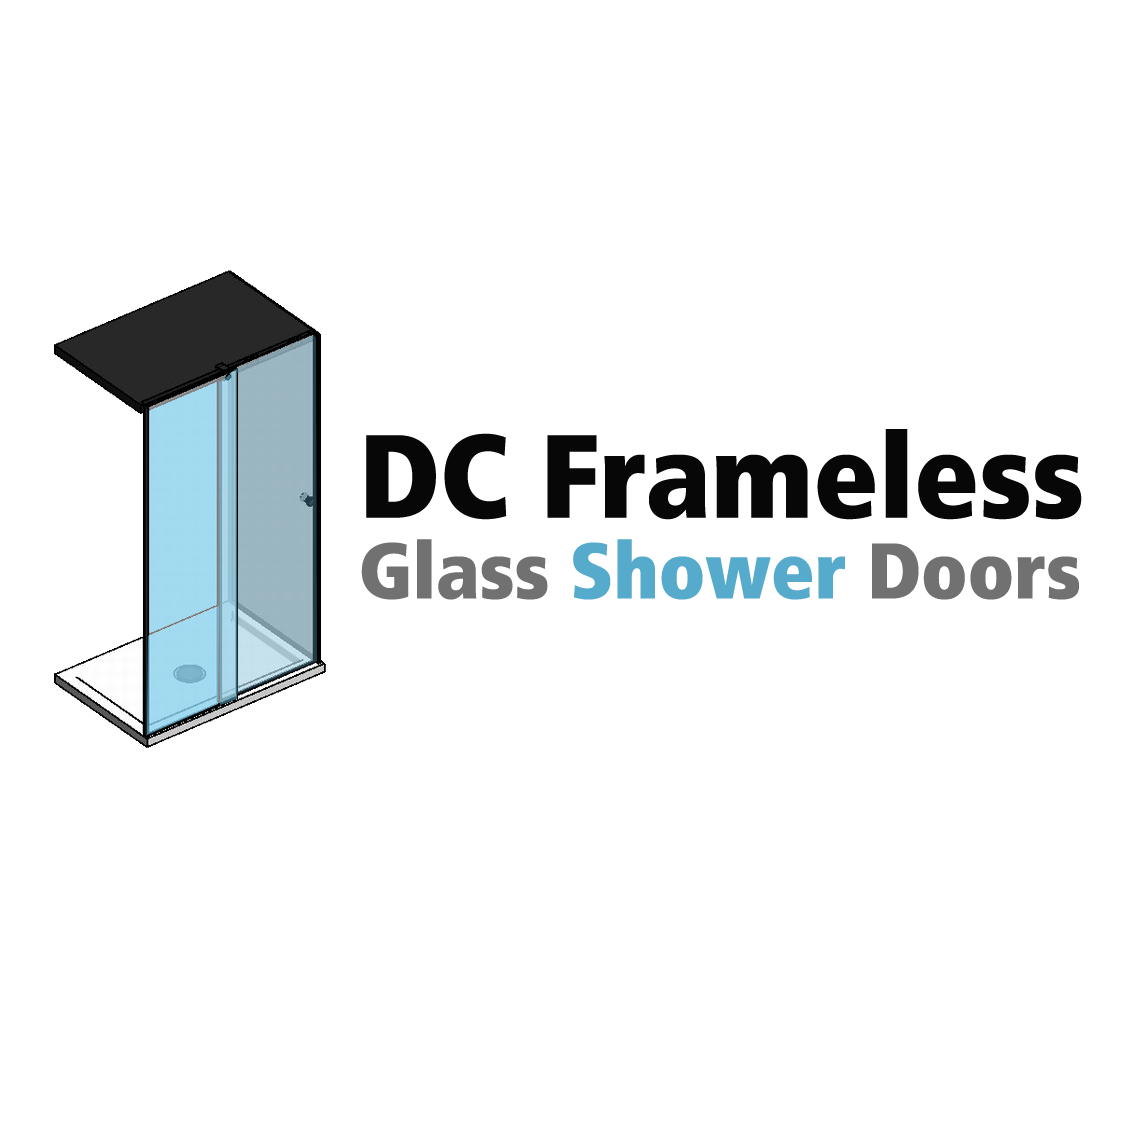 DC Frameless Glass Shower Doors | (202) 868-6828 | Glass Enclosures